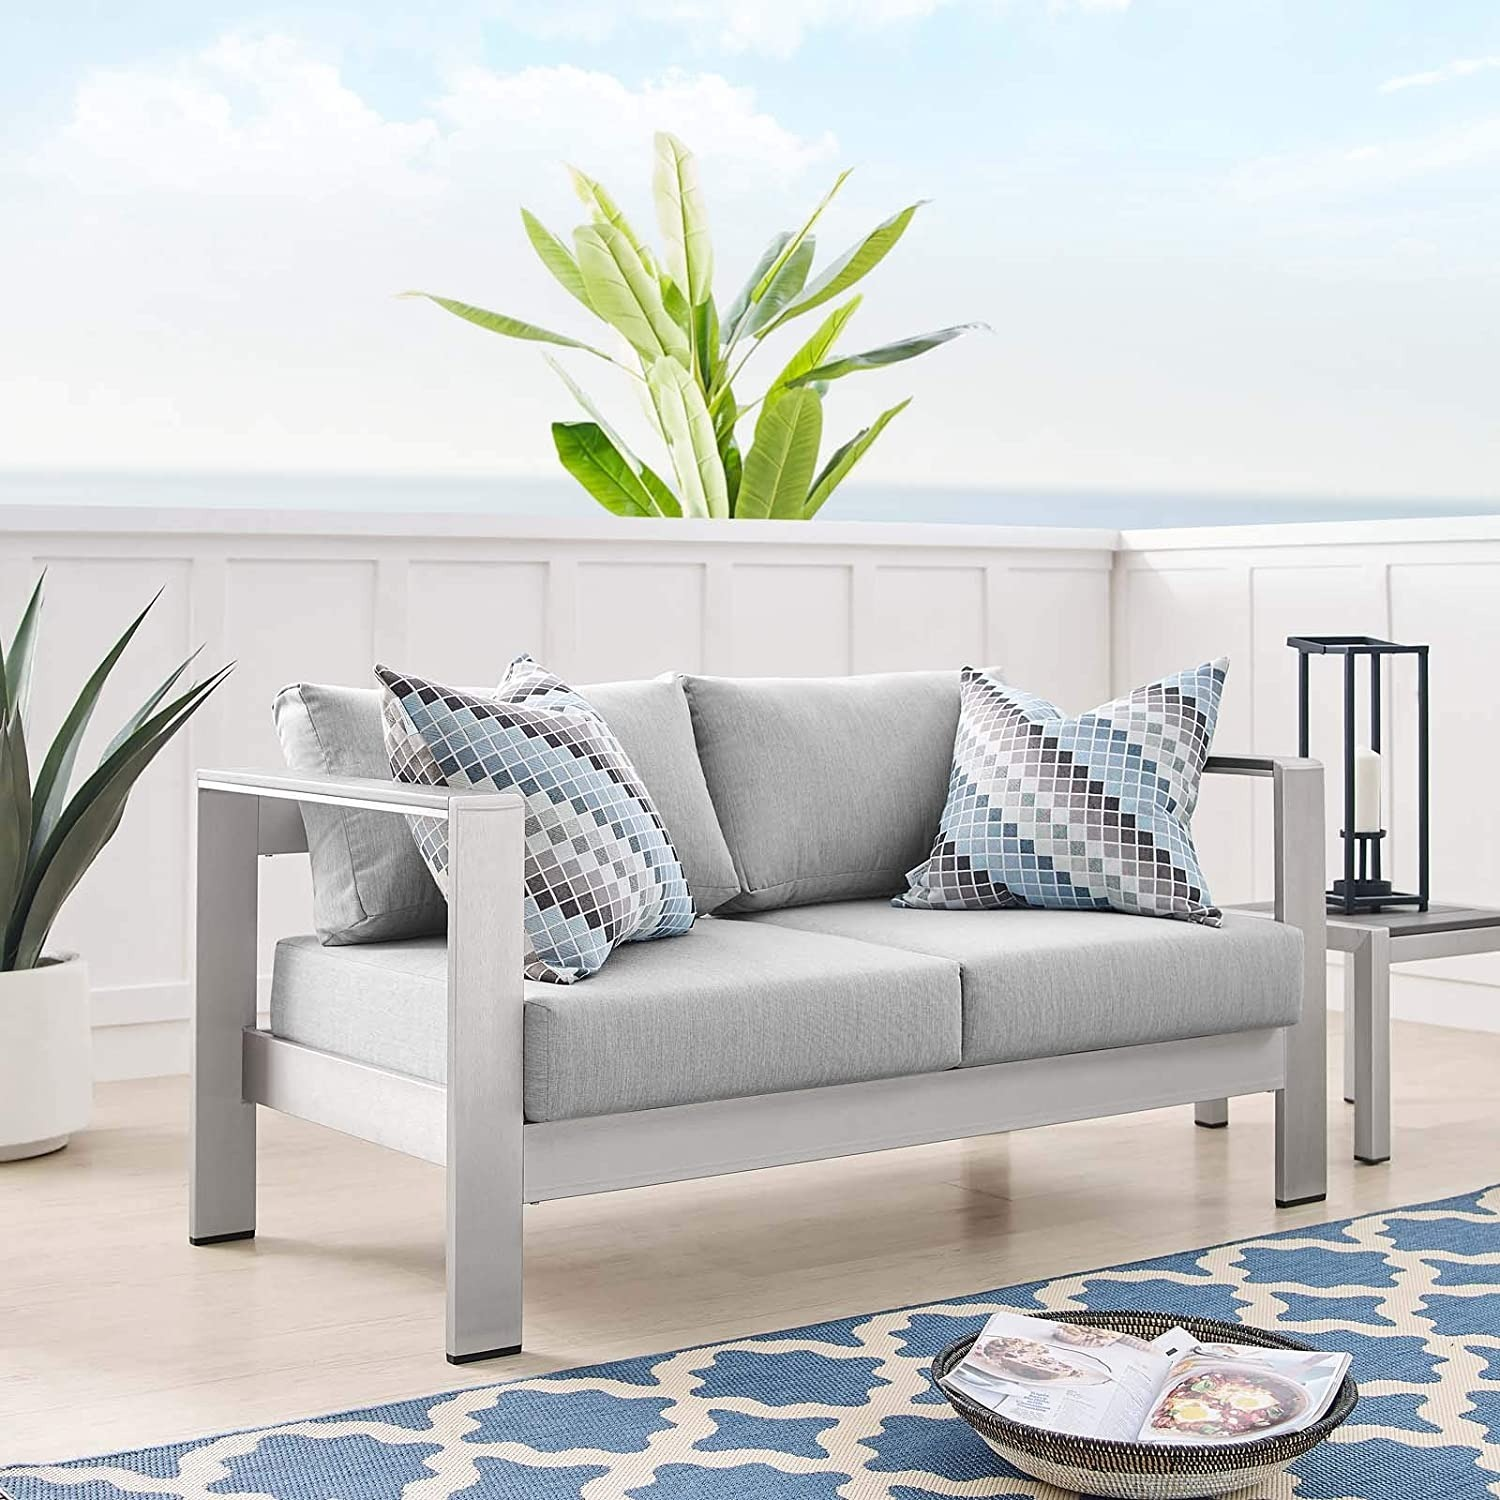 Outdoor Loveseat In Silver Aluminum Frame Finish - image-7